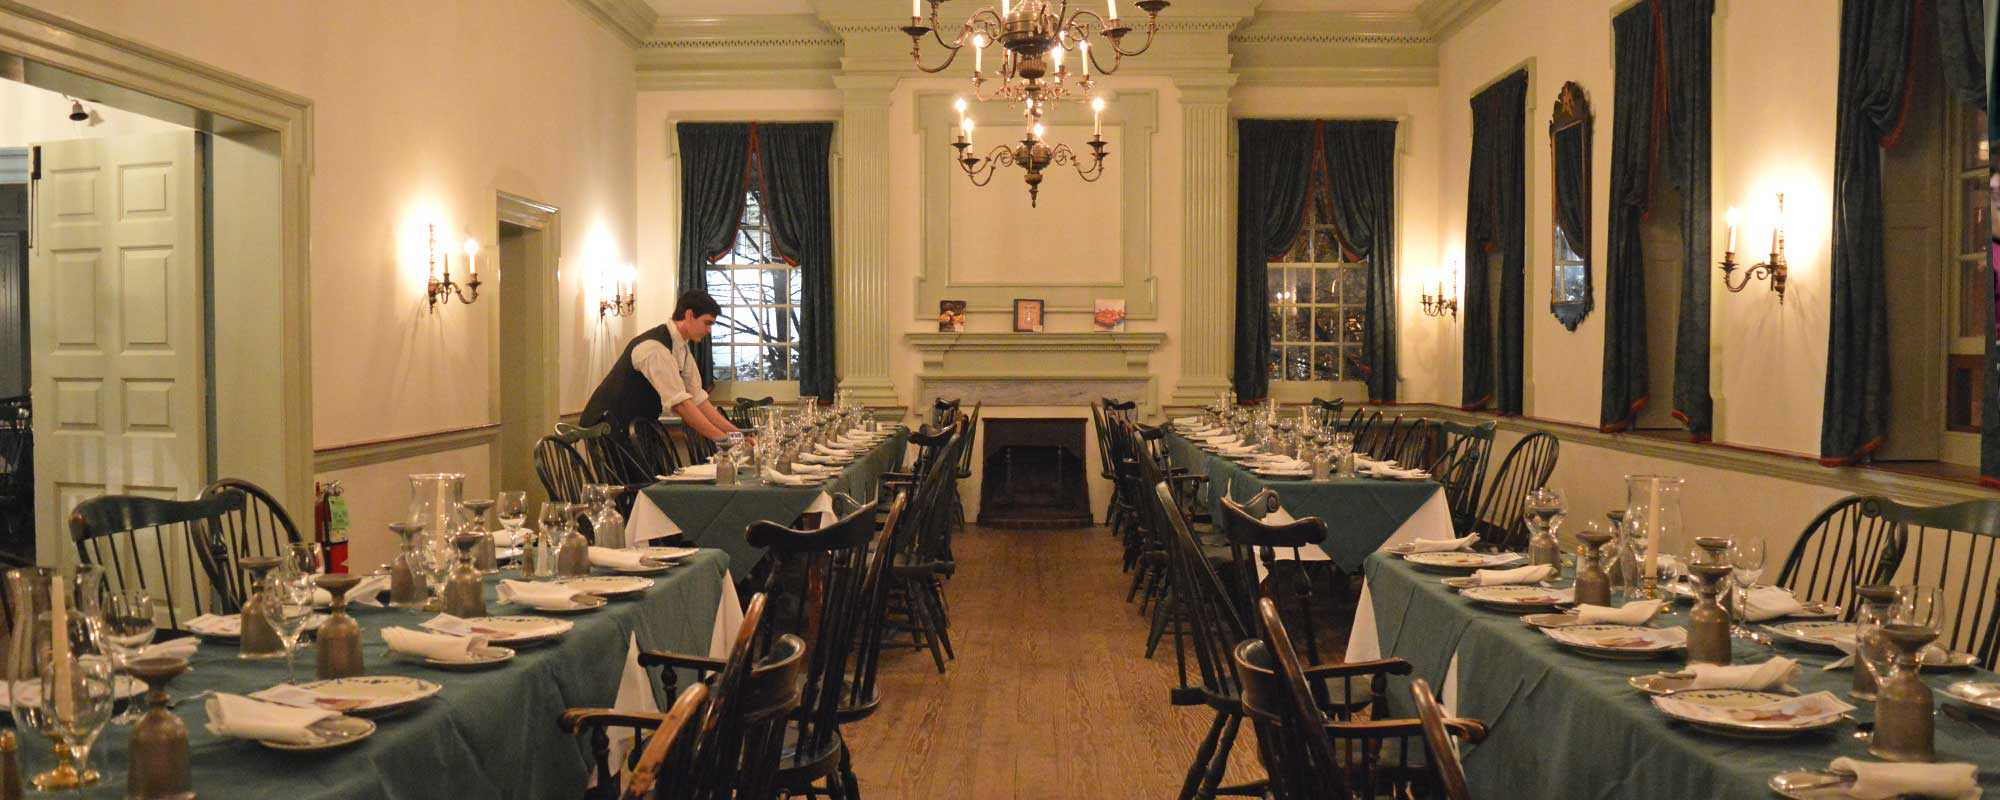 City Tavern Dining Room